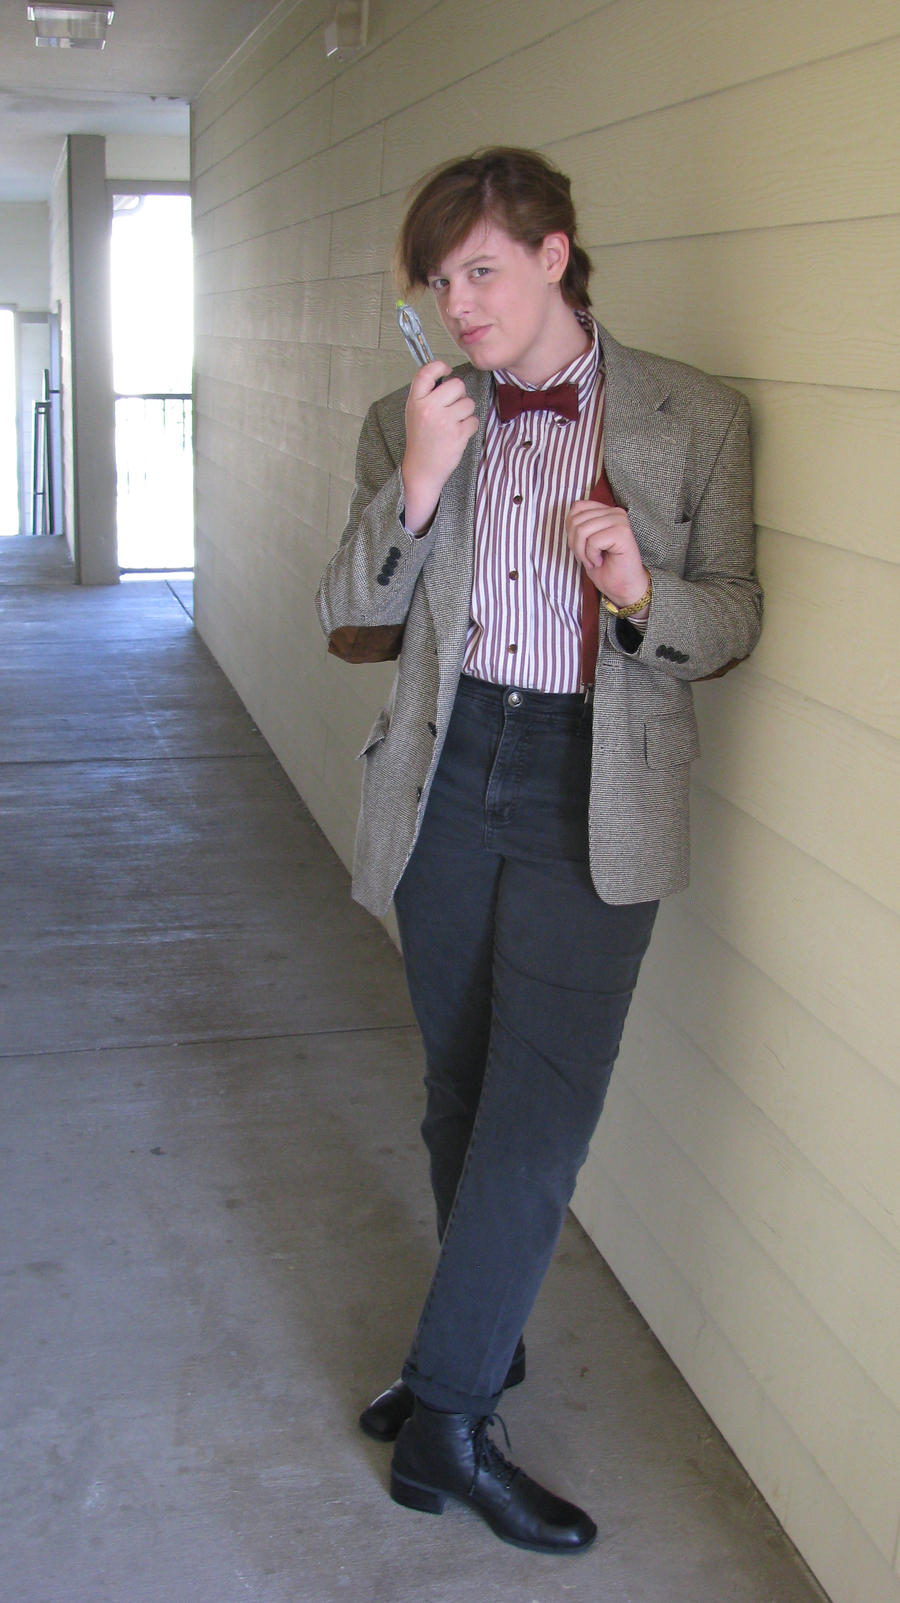 Eleventh_Doctor_Cosplay_1_by_Texas_Guard_Chic  sc 1 st  Forevergeek & Clever Doctor Who Costume and Cosplay Fun for Halloween and 50th ...